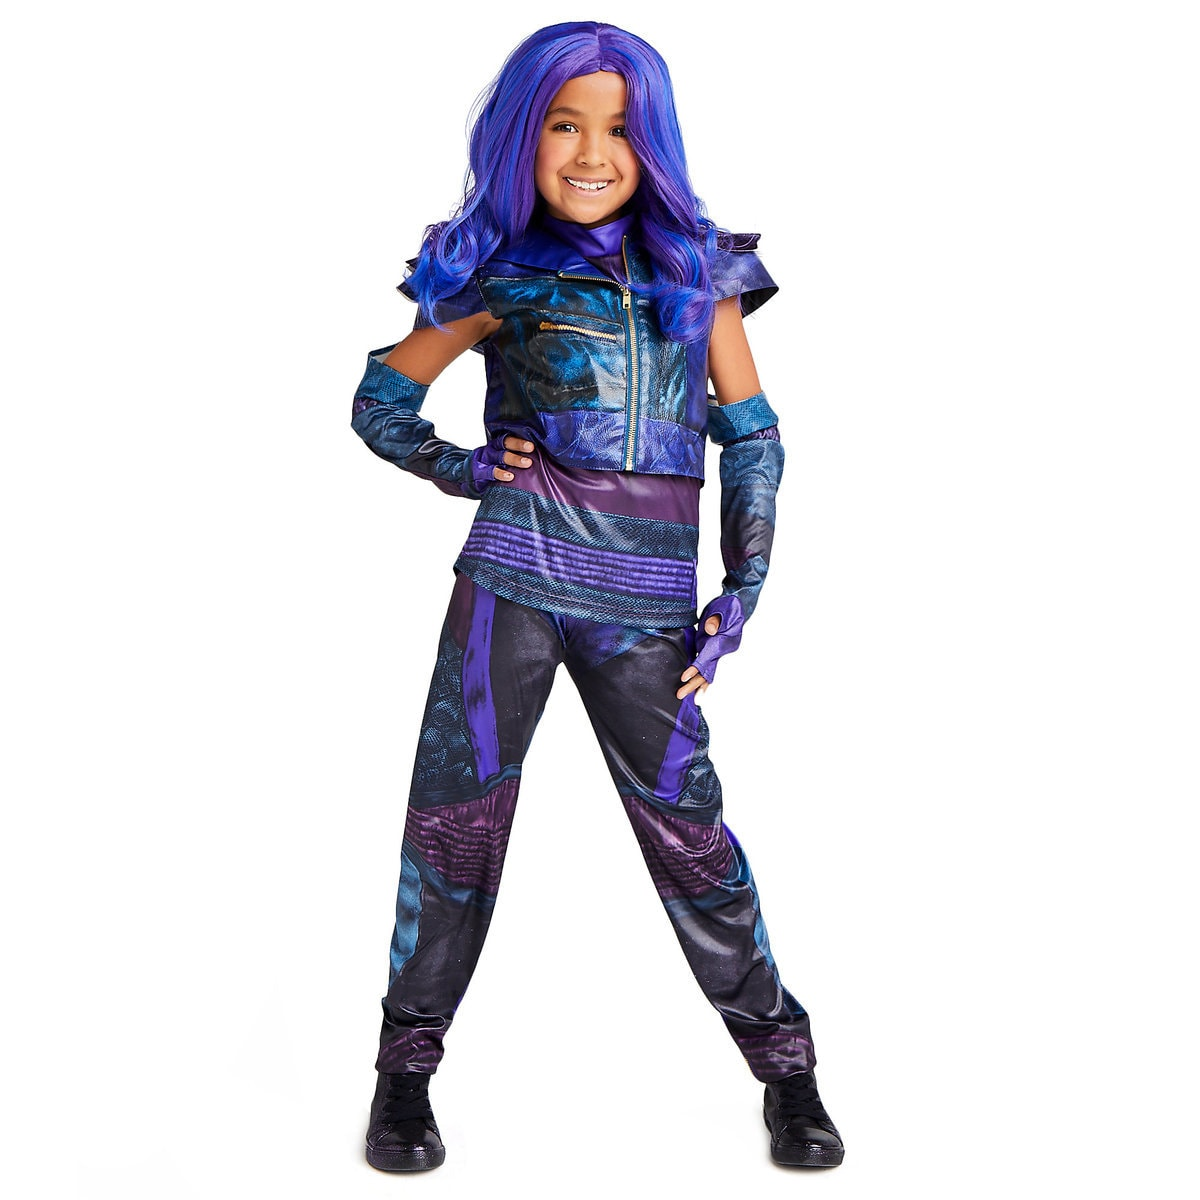 f4e5f1a91b220f Mal Costume for Kids - Descendants 3 | shopDisney